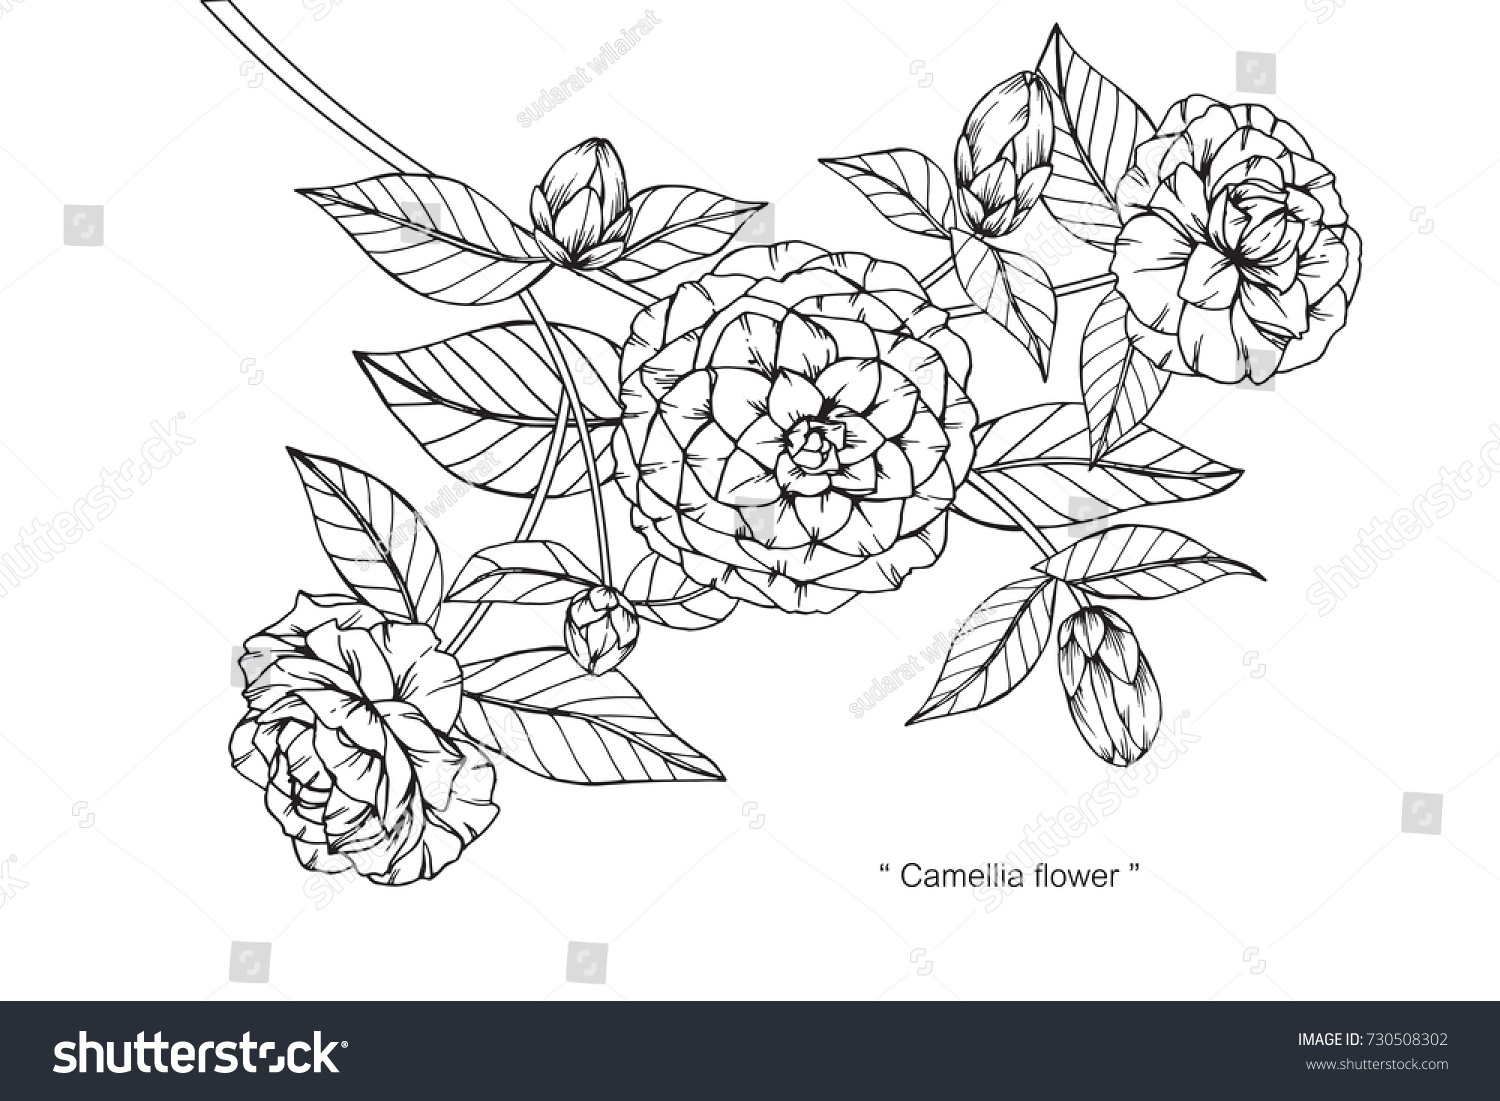 Camellia Flower Line Drawing : Hand drawing sketch camellia flower black stock vector